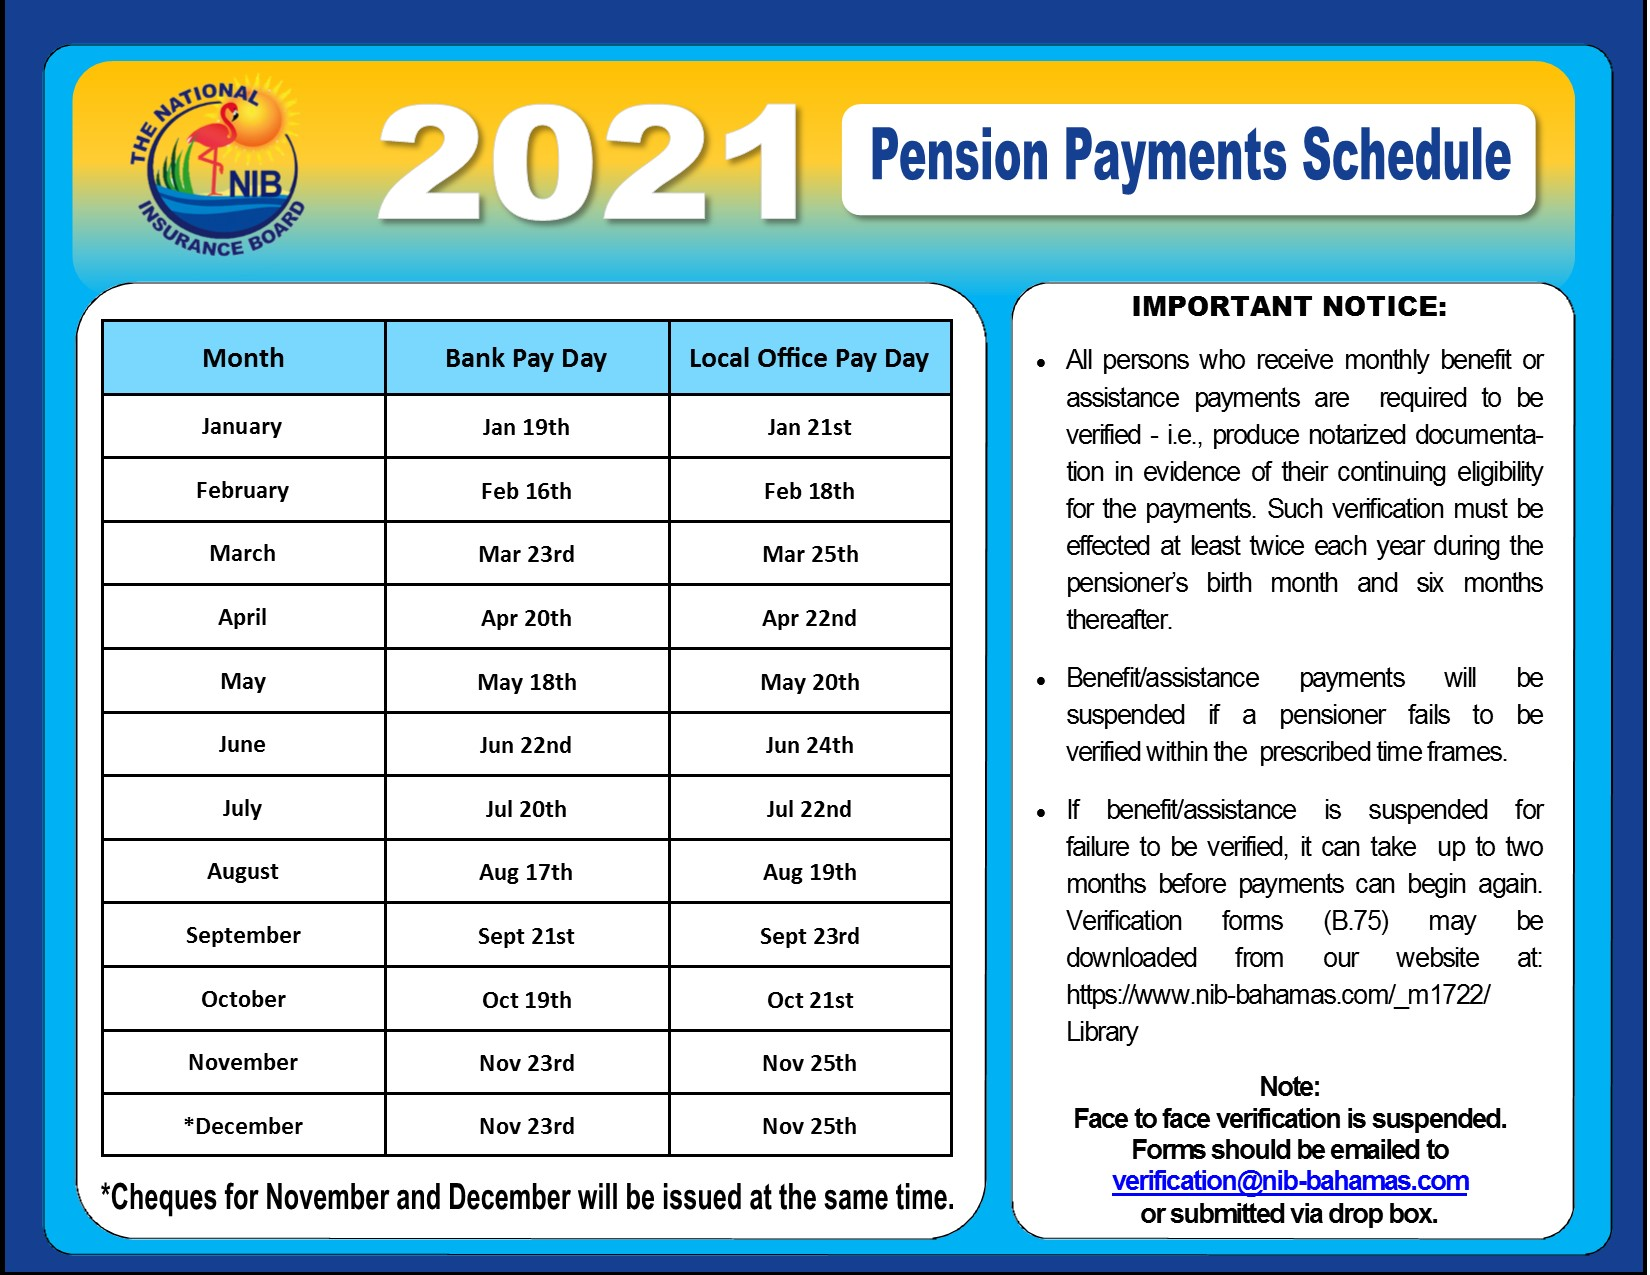 NIB - News - Pension Payment Schedule 2021